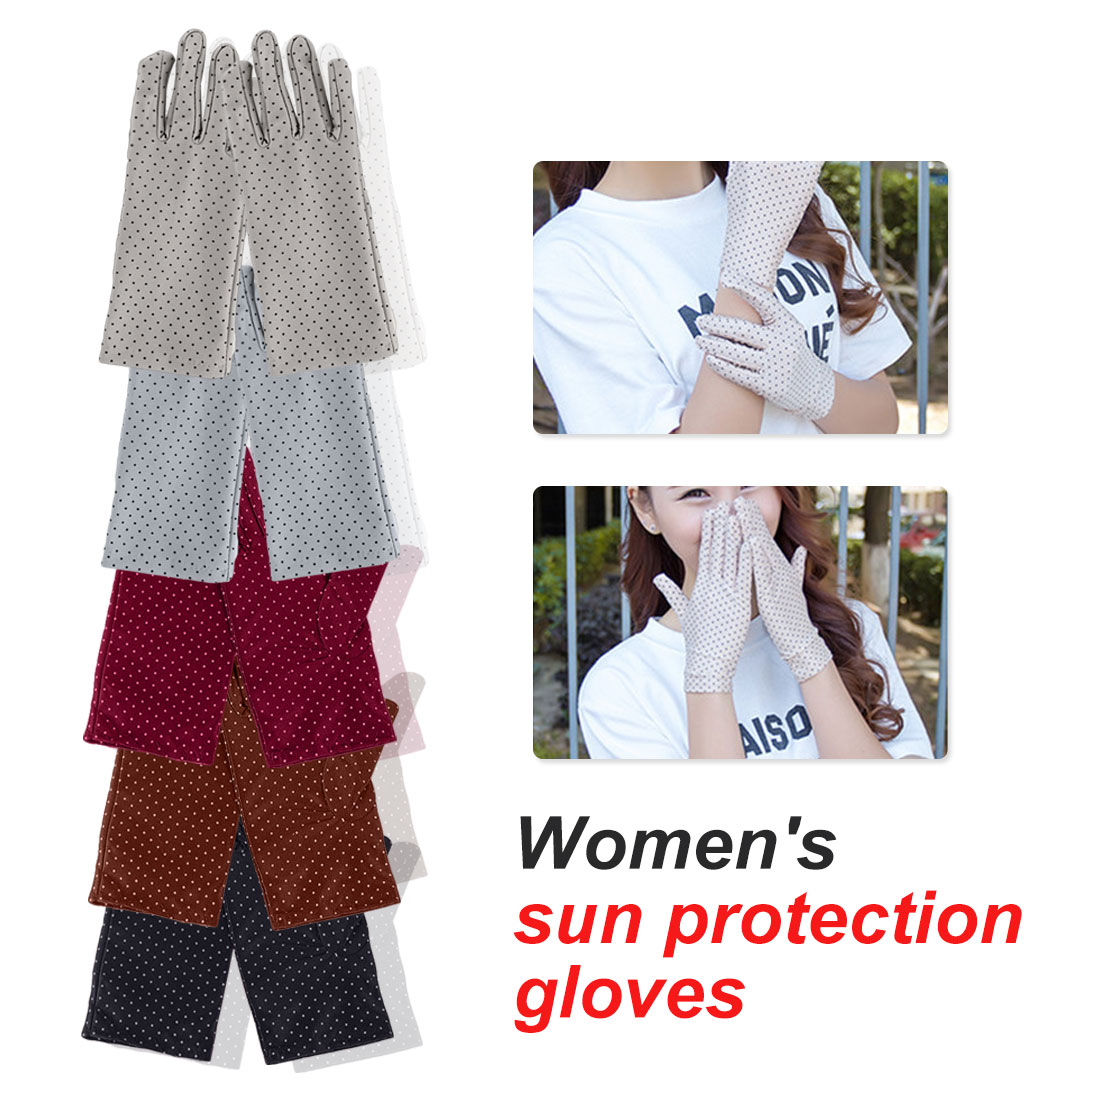 Black 2019 Women's Driving Slip-resistant Sunscreen Cotton Golves Fashion 1 Pair Summer/Autumn Sun Protection Non-slip Glove